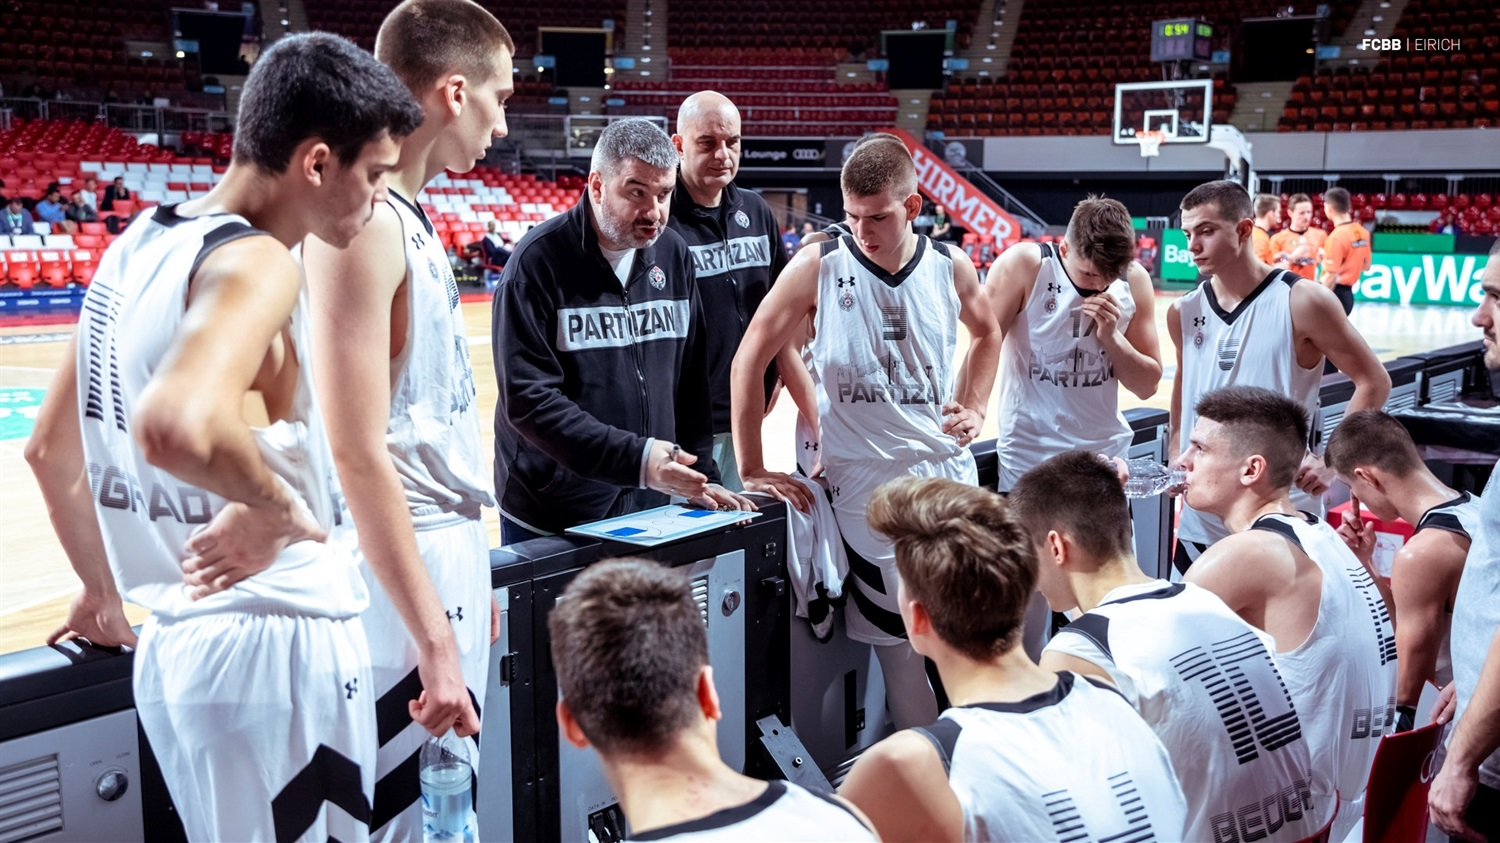 Team U18 Partizan NIS Belgrade - ANGT Munich 2019 (photo FCBB - Eirich) JT18